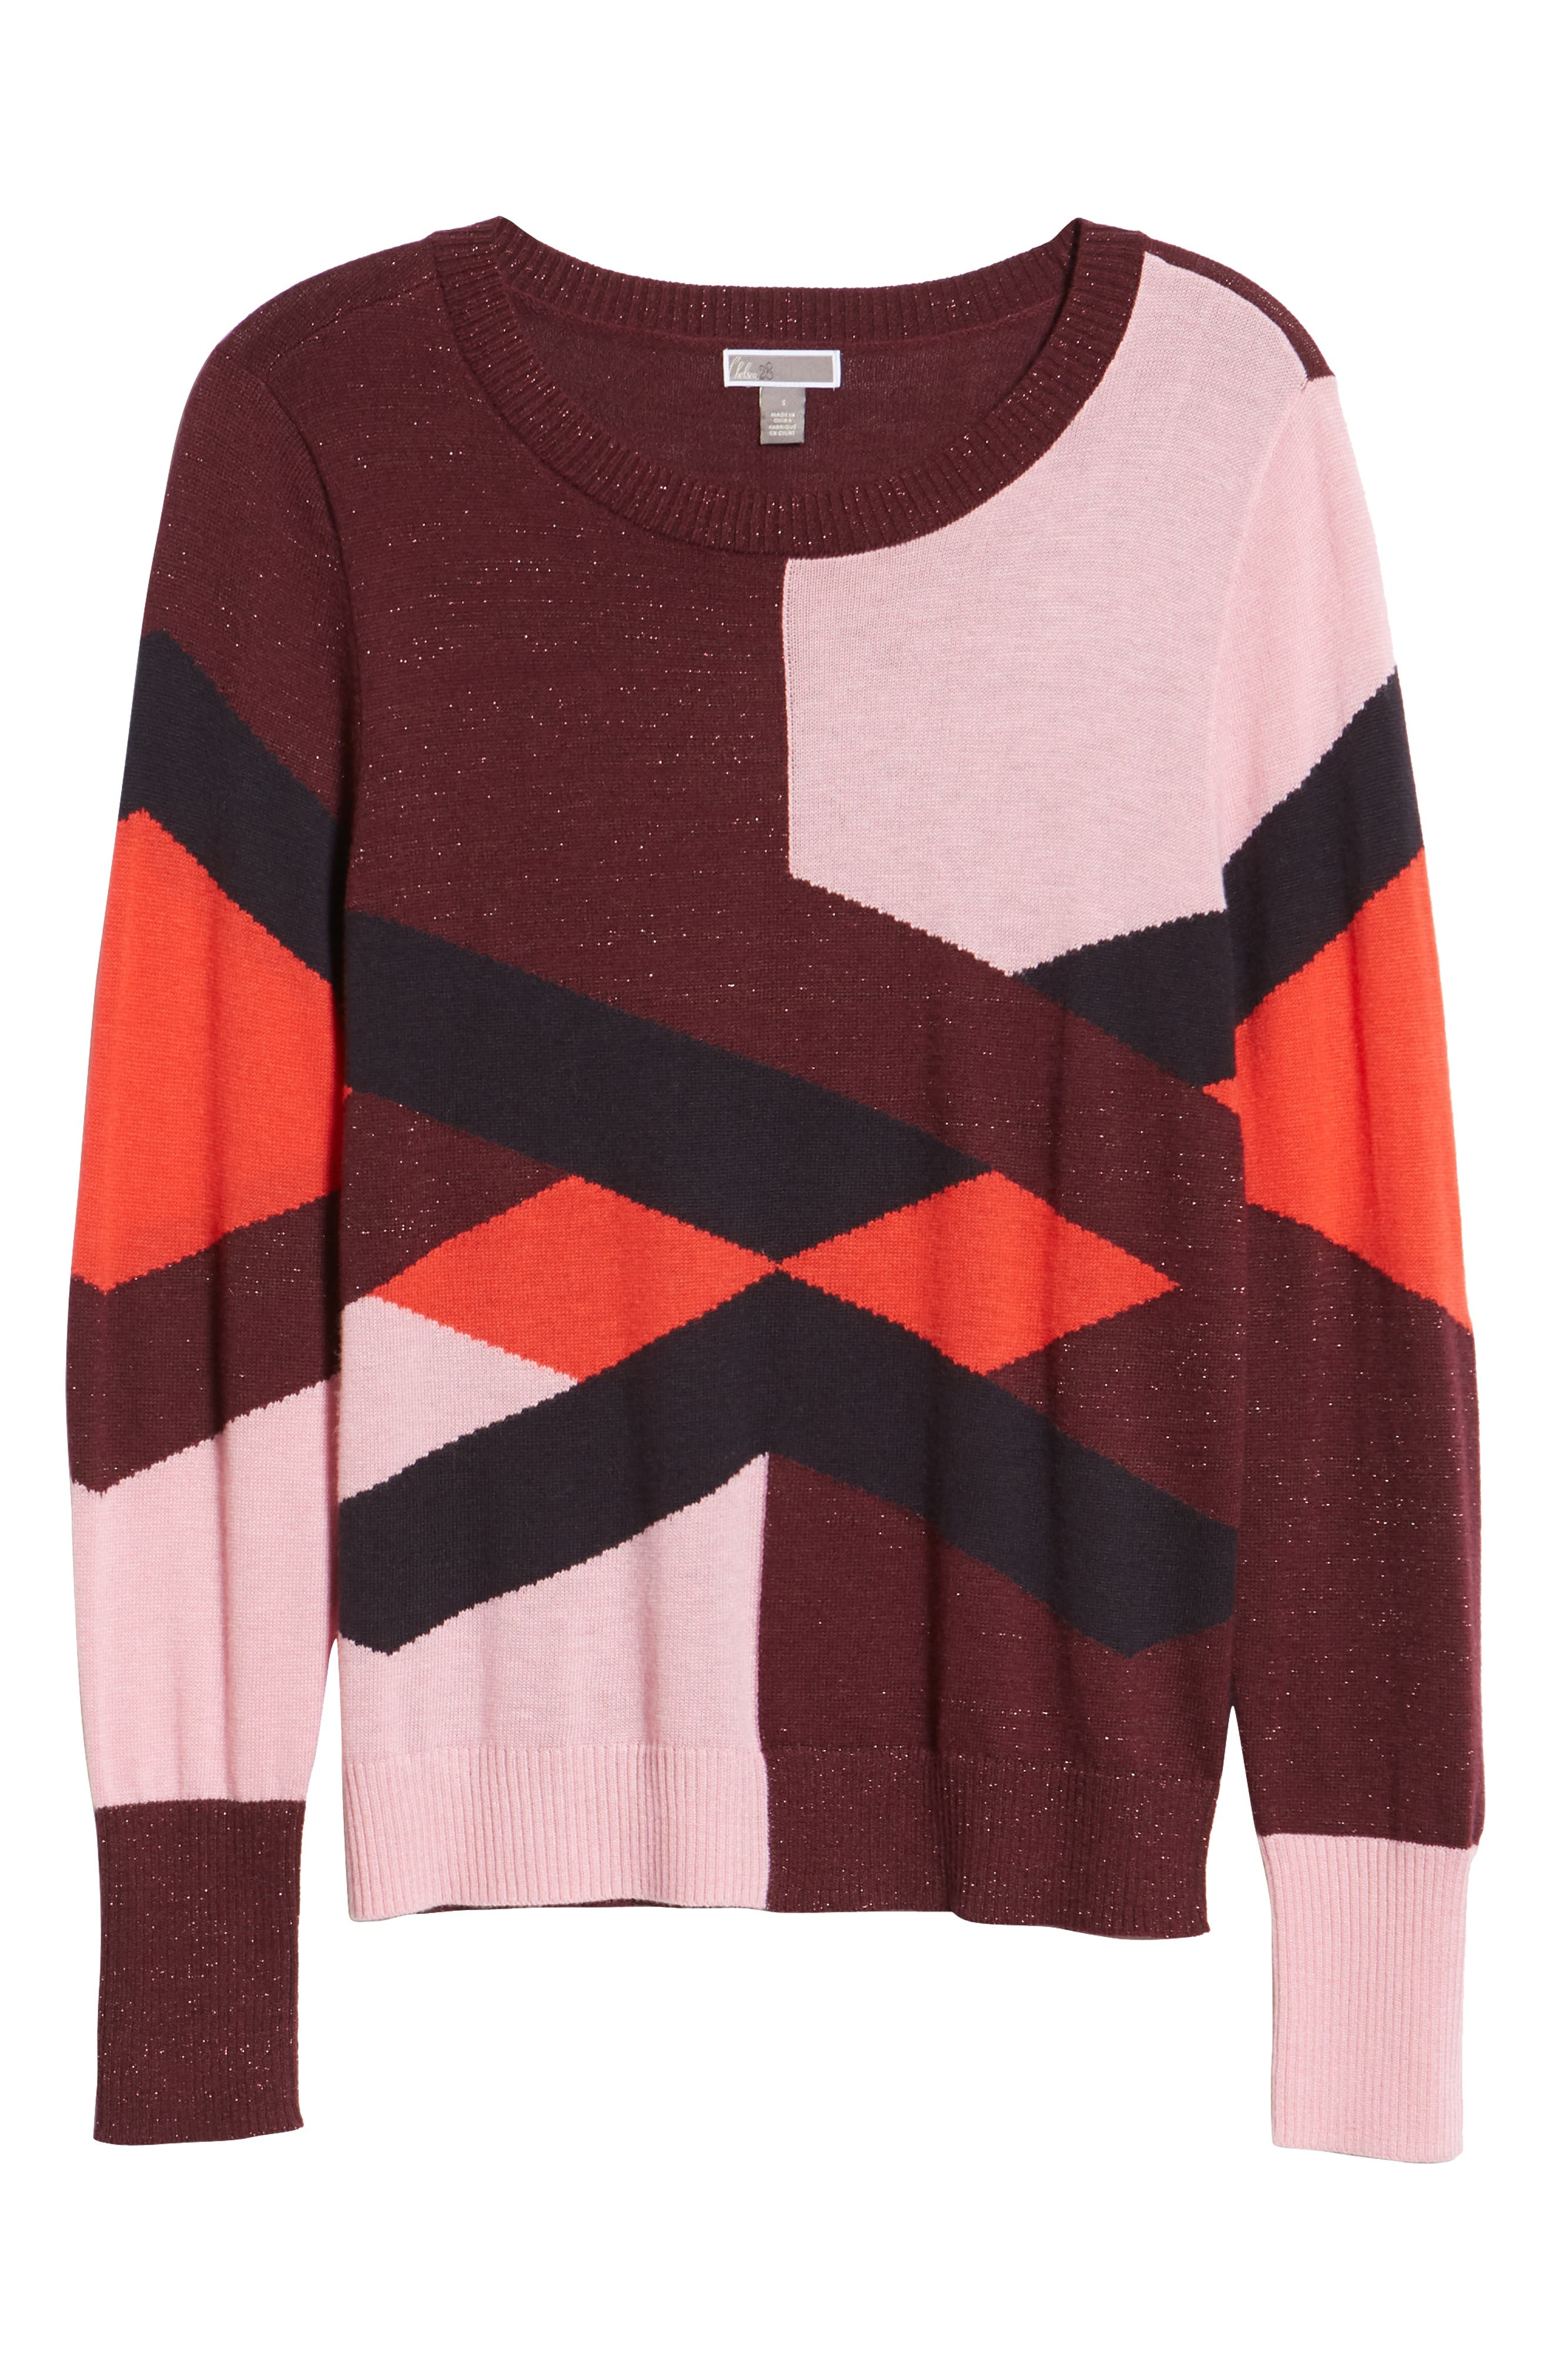 Intarsia Sweater,                             Alternate thumbnail 6, color,                             PINK STORM GRAPHIC INTARSIA